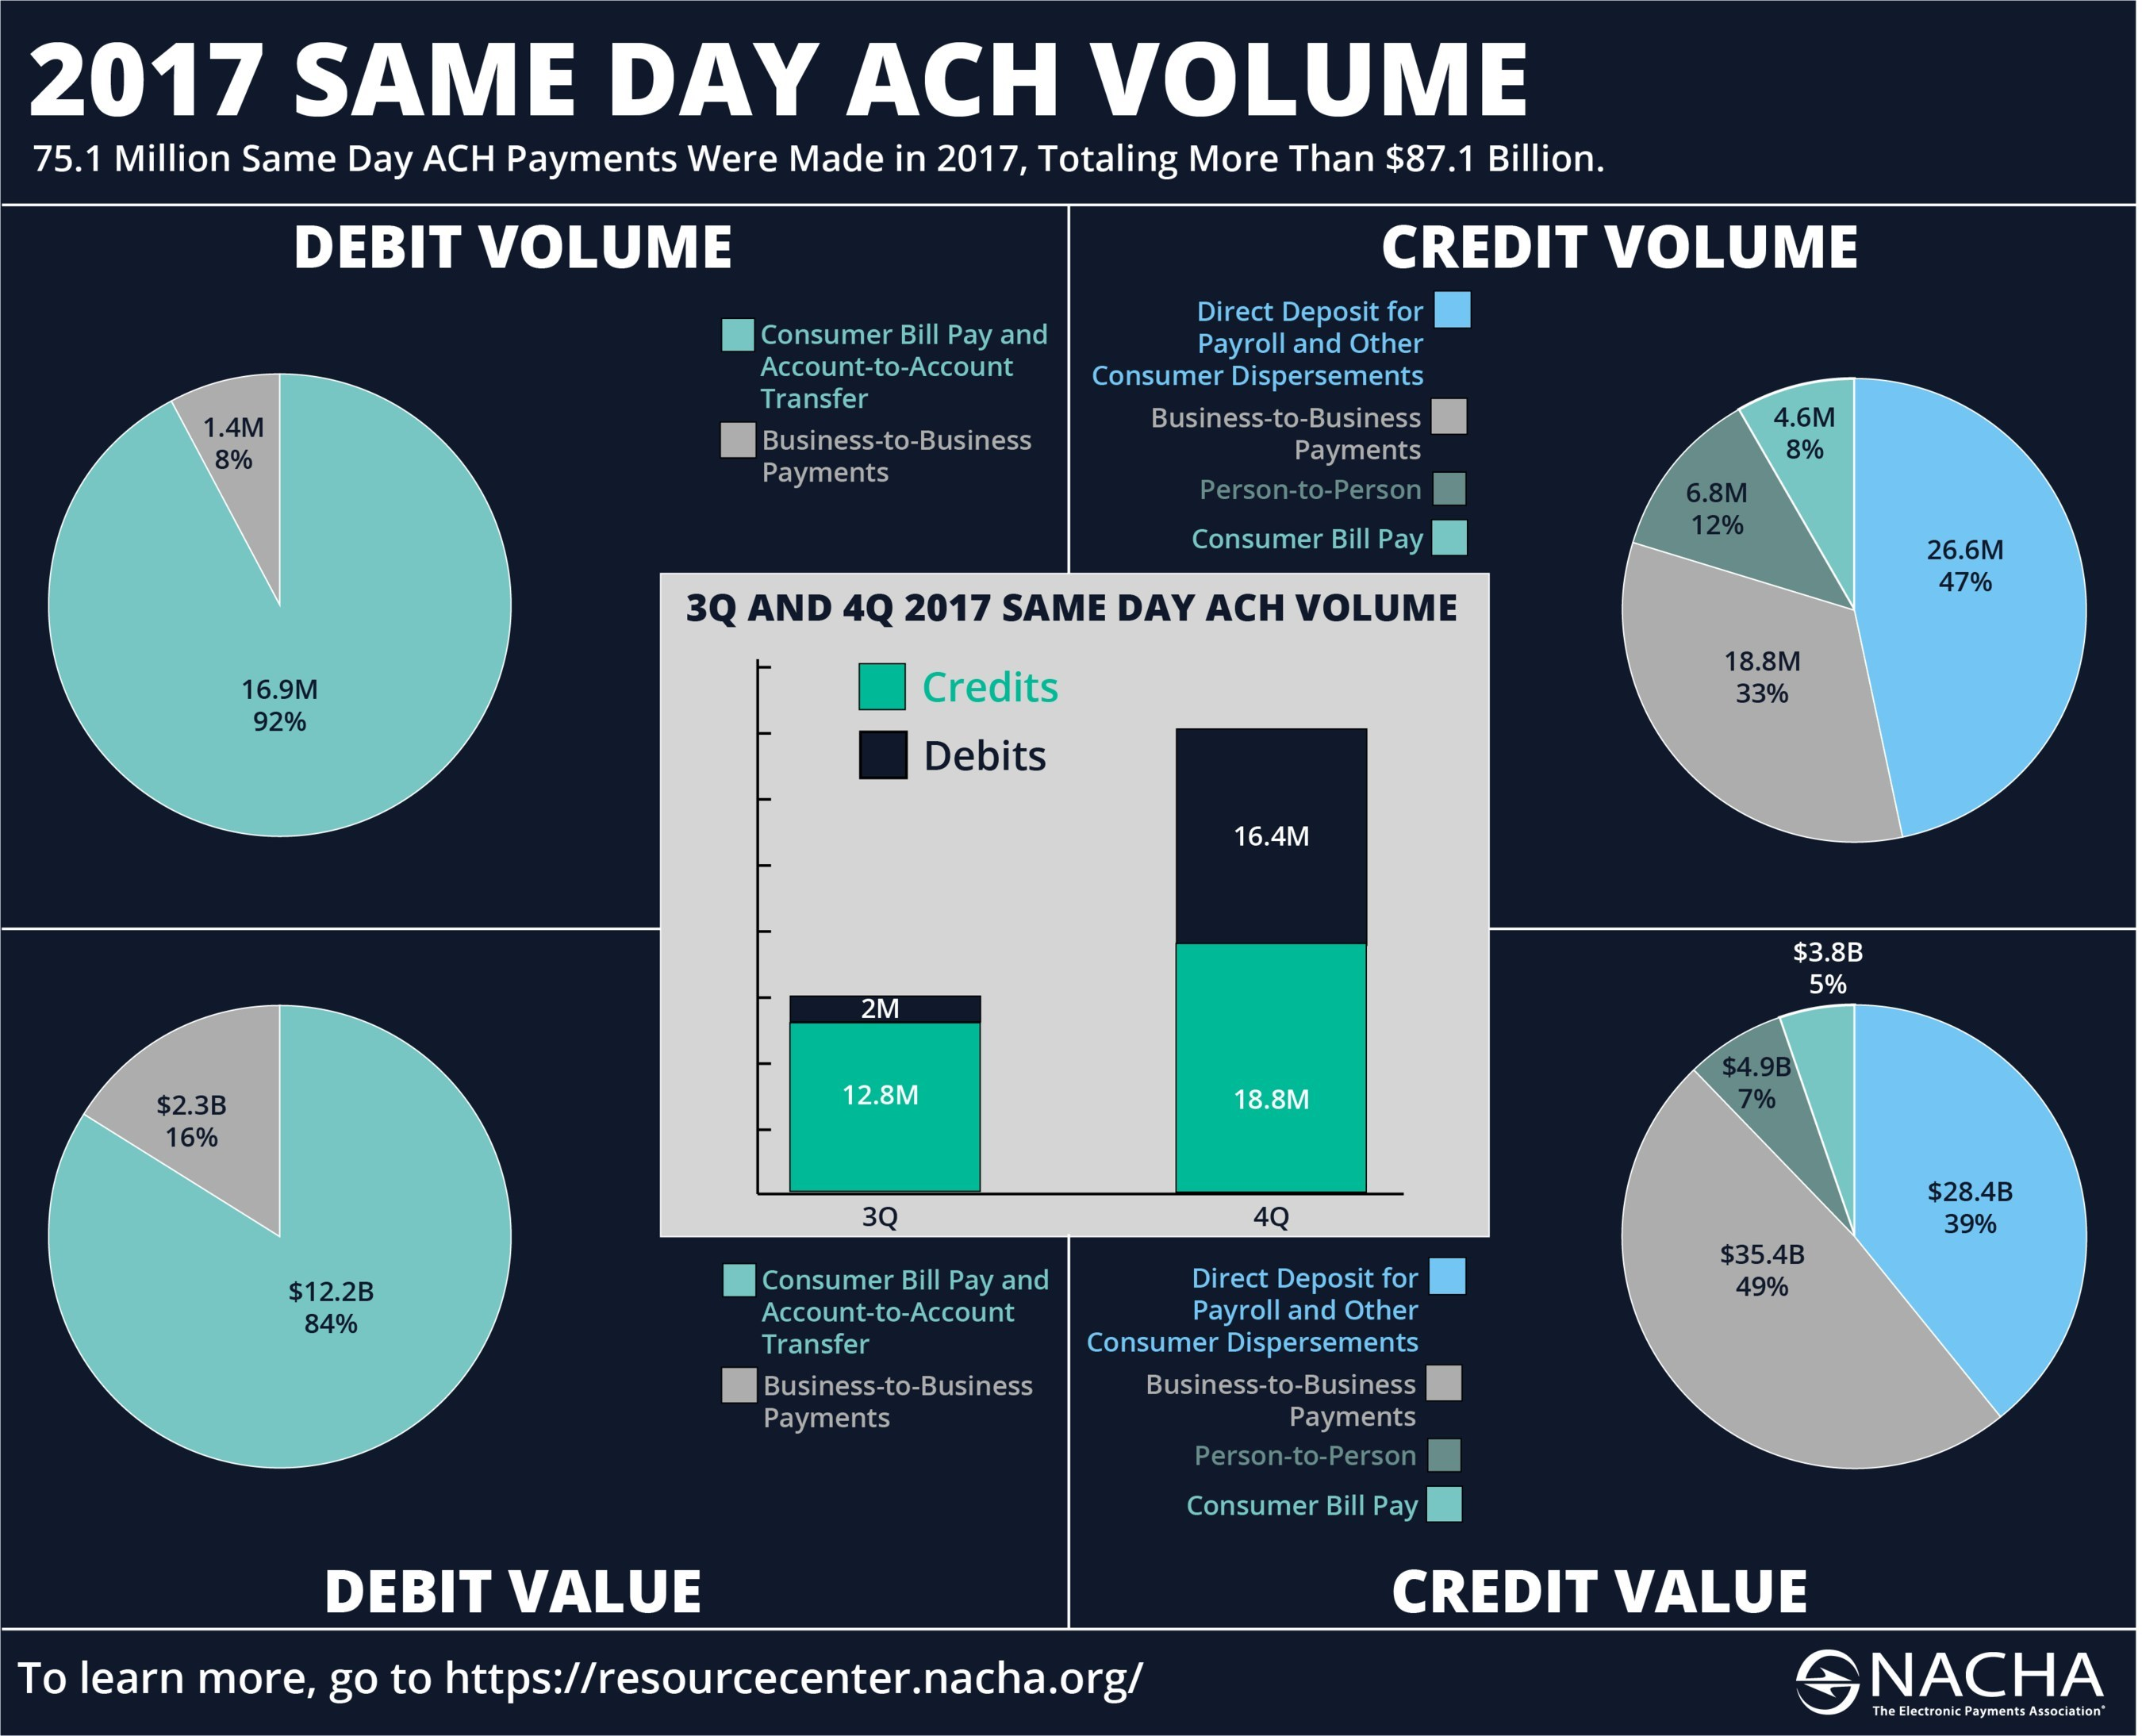 75.1 million Same Day ACH payments were made in 2017, totaling more than $87.1 billion.